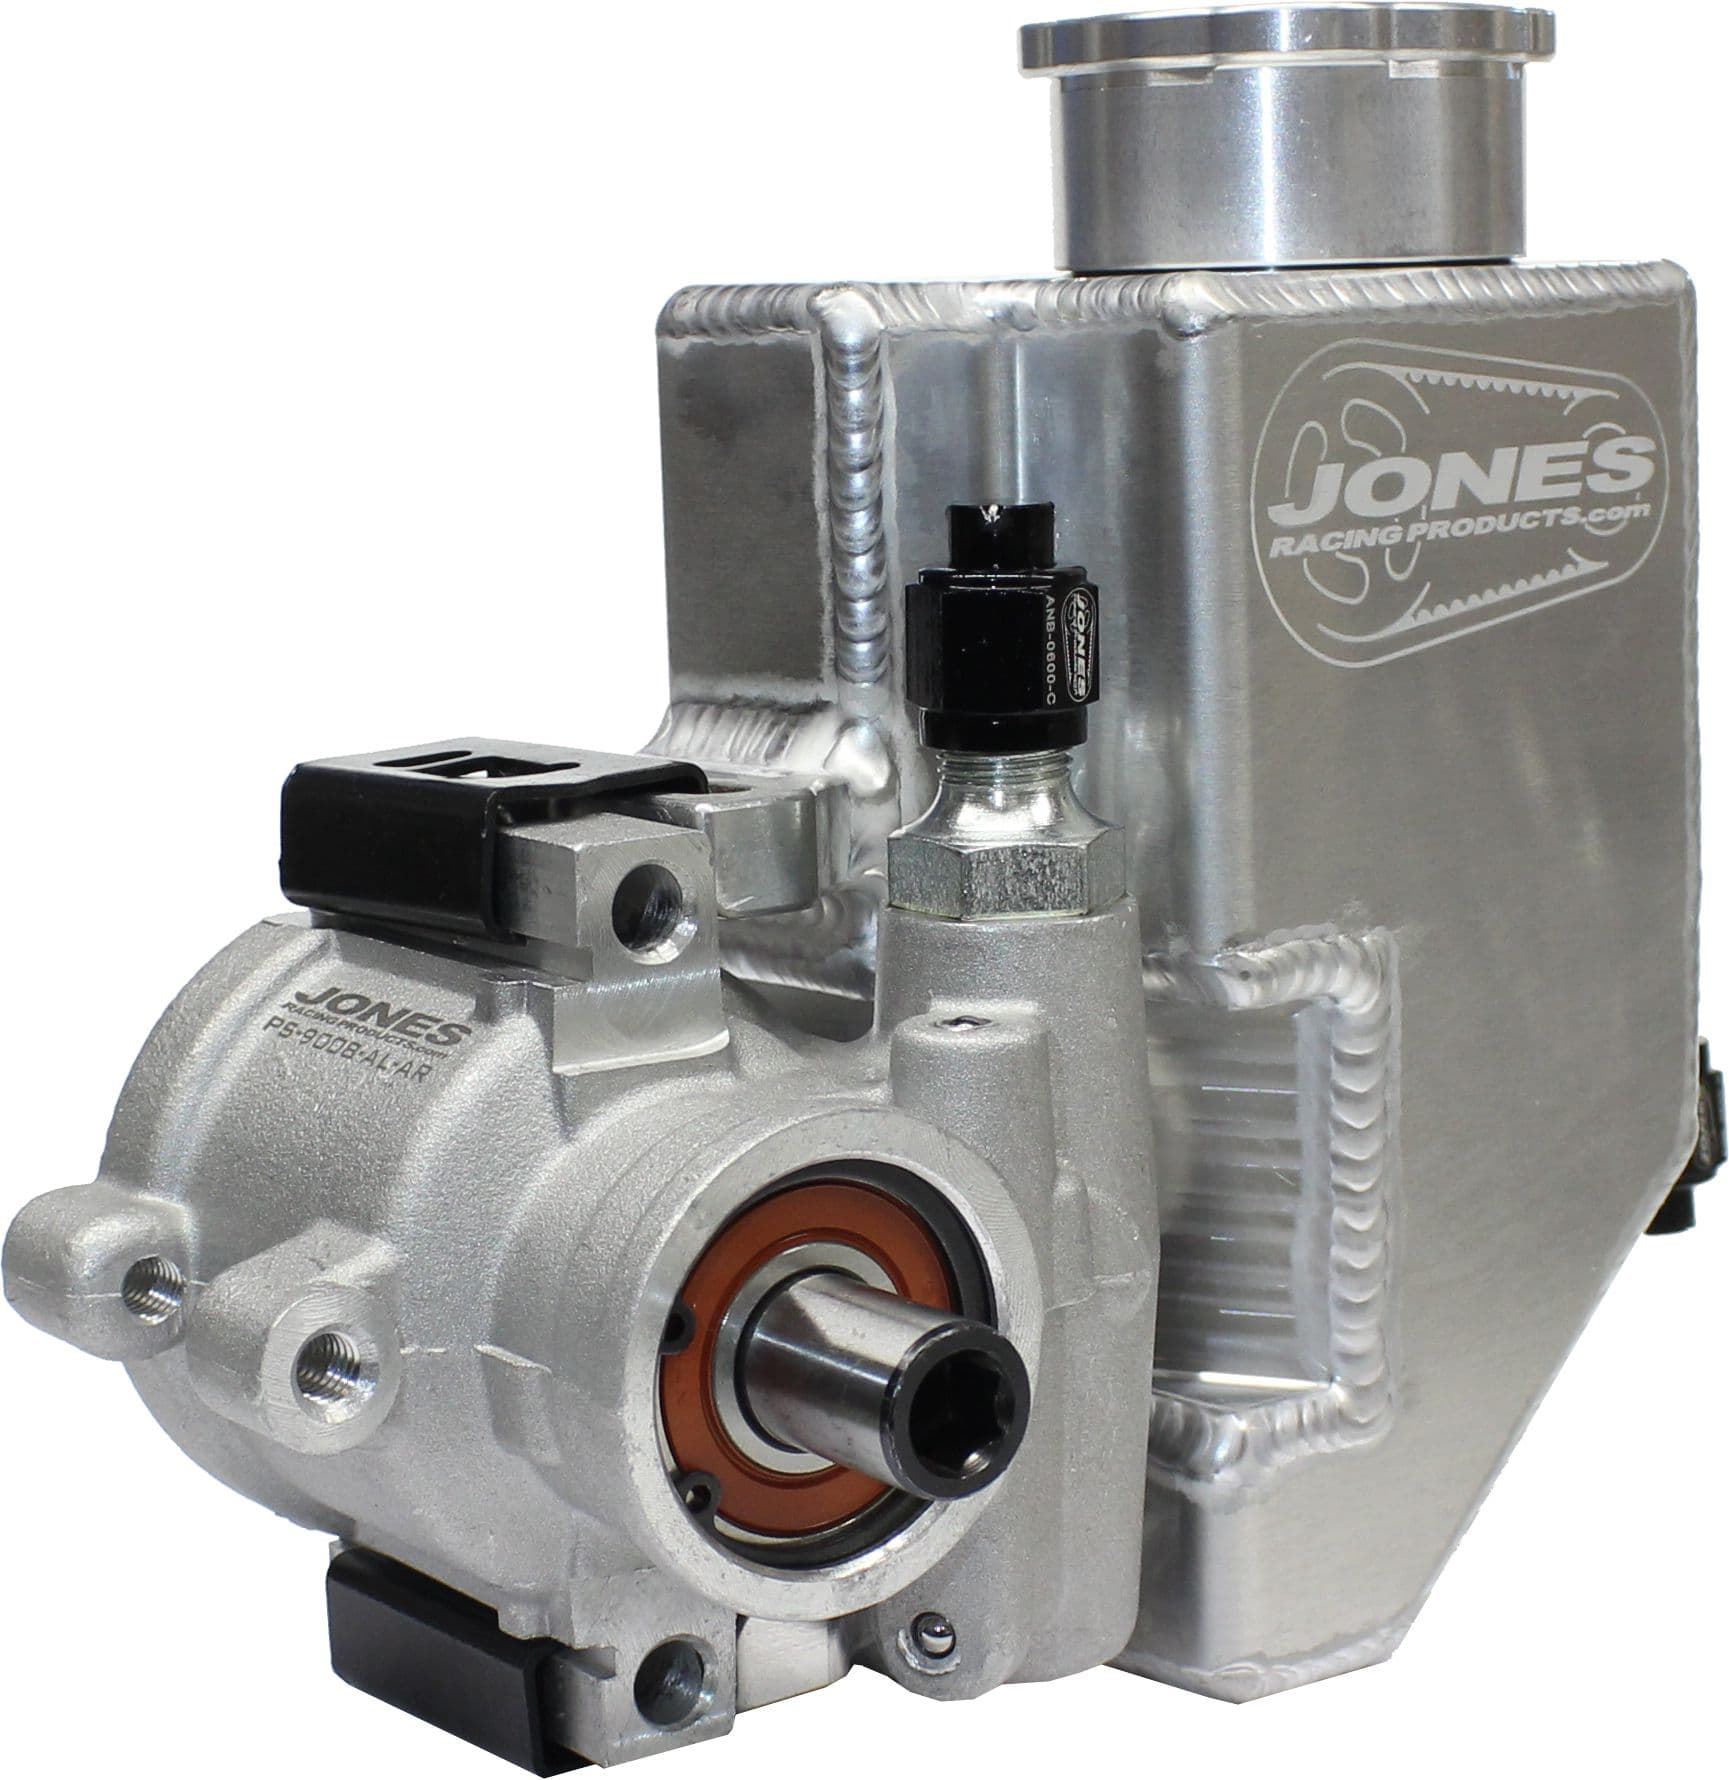 Jones Racing Power Steering Pumps PS9008-AL-AR